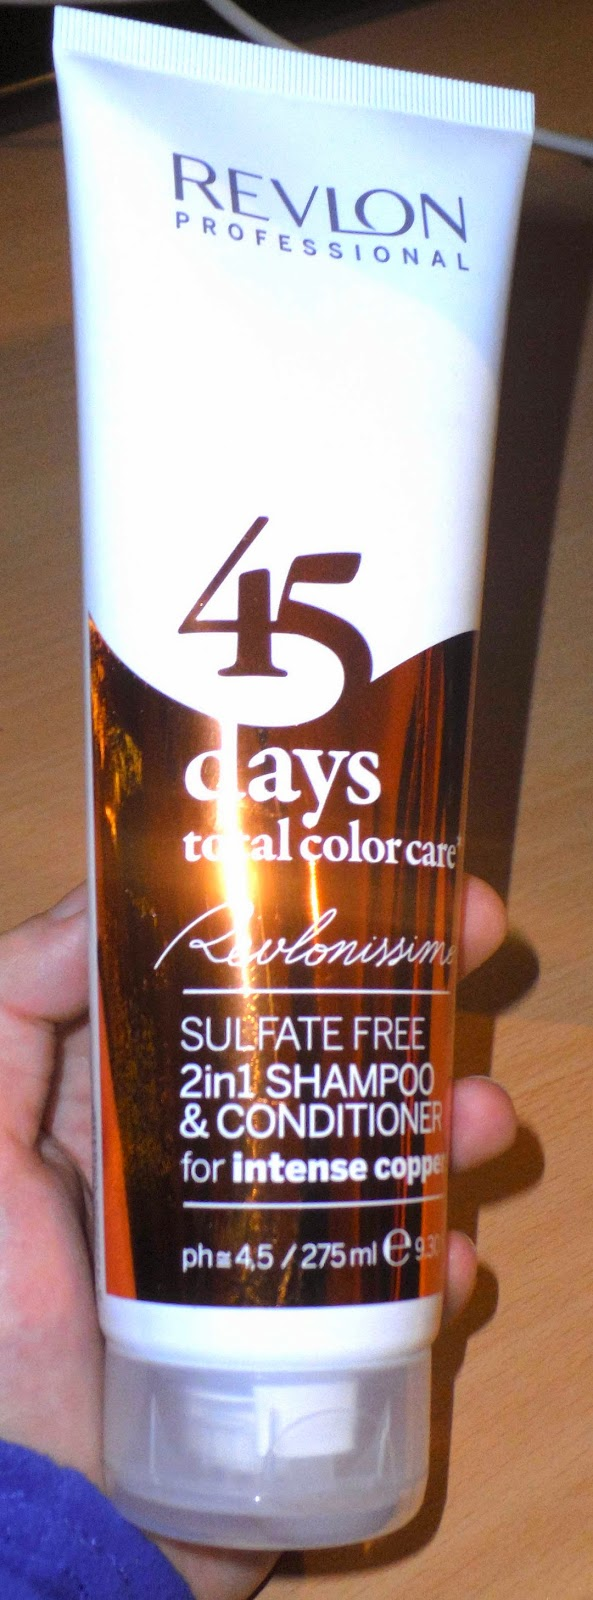 Revlonissimo 45 days color care intense cooper